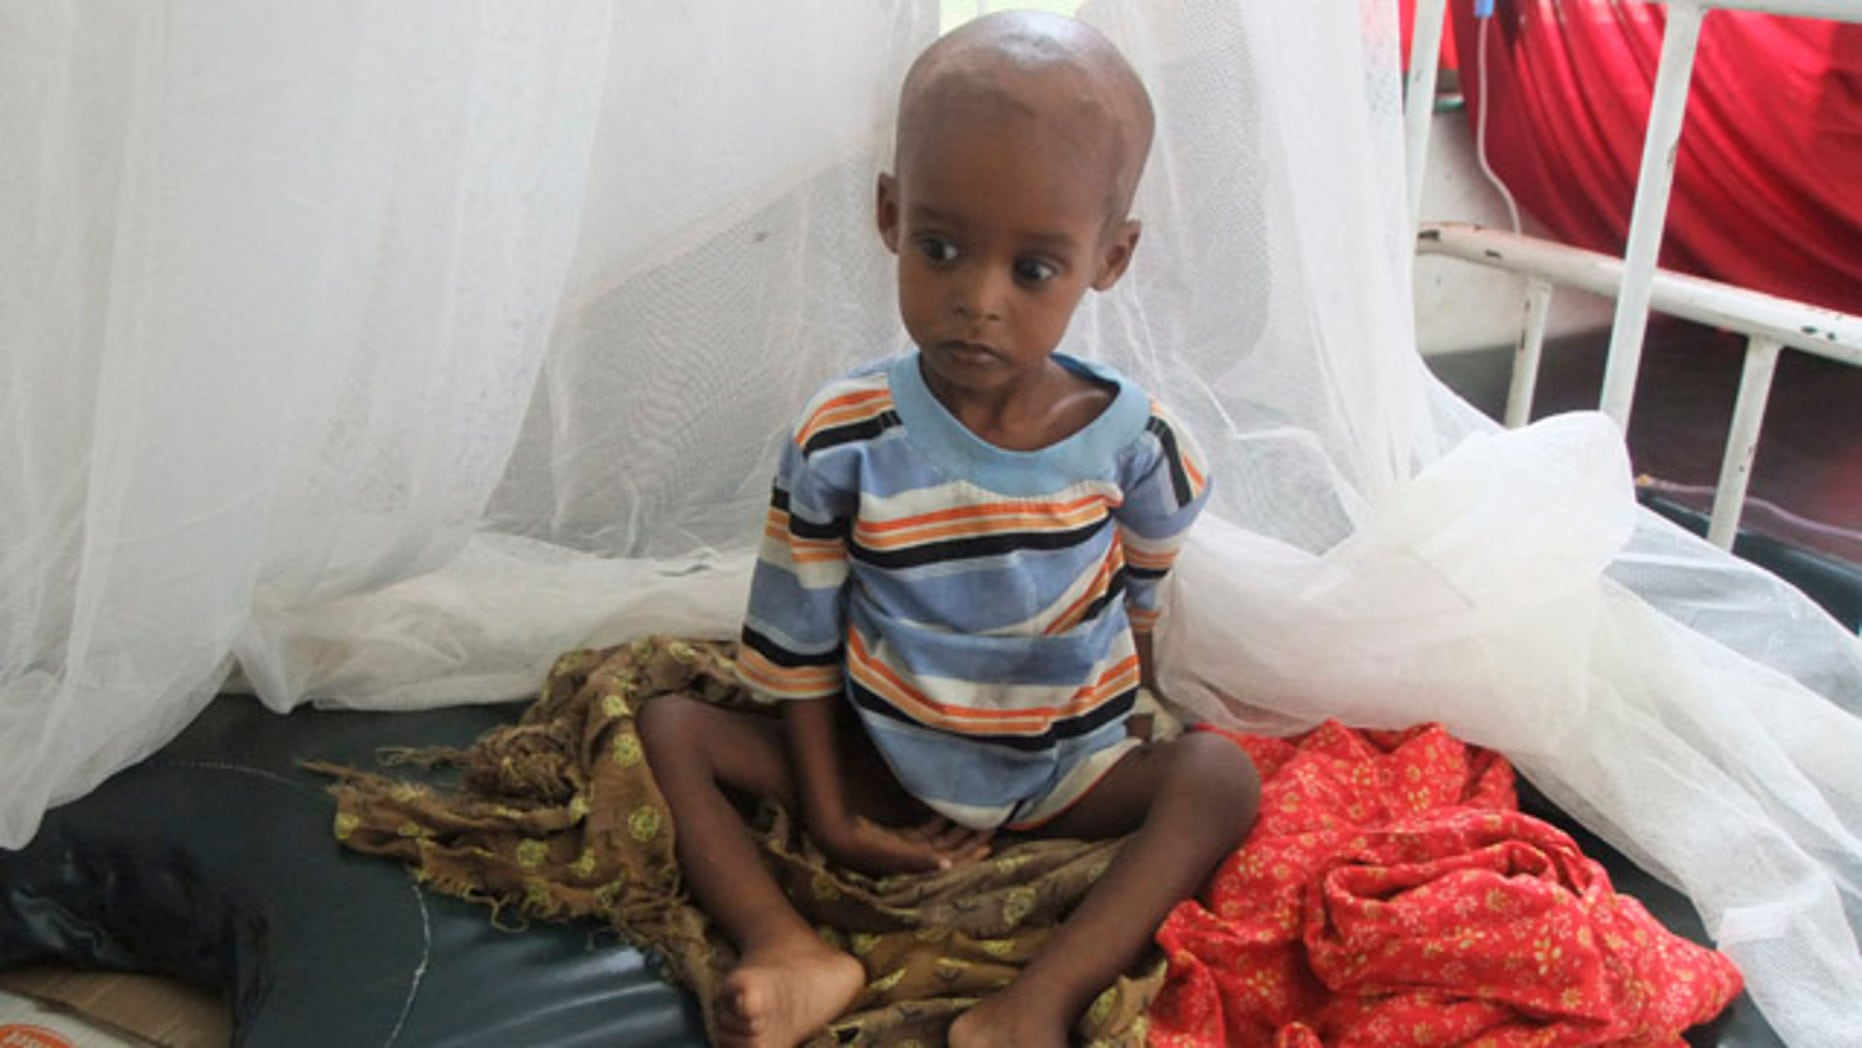 Aug. 1: A malnourished child from southern Somalia sits on a  bed at Banadir hospital in Mogadishu.